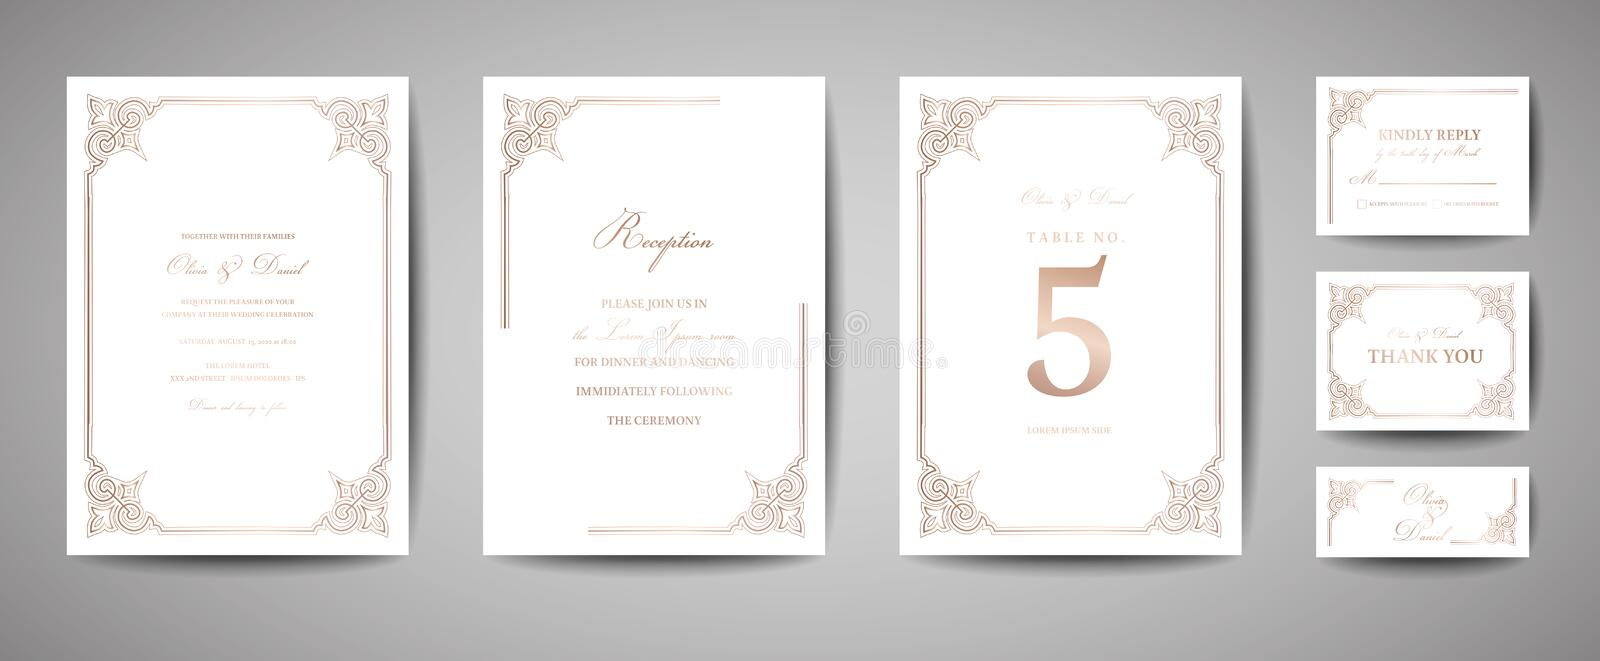 Luxury Vintage Wedding Save the Date, Invitation Cards Collection with Gold Foil Frame and Wreath. trendy cover, graphic stock illustration